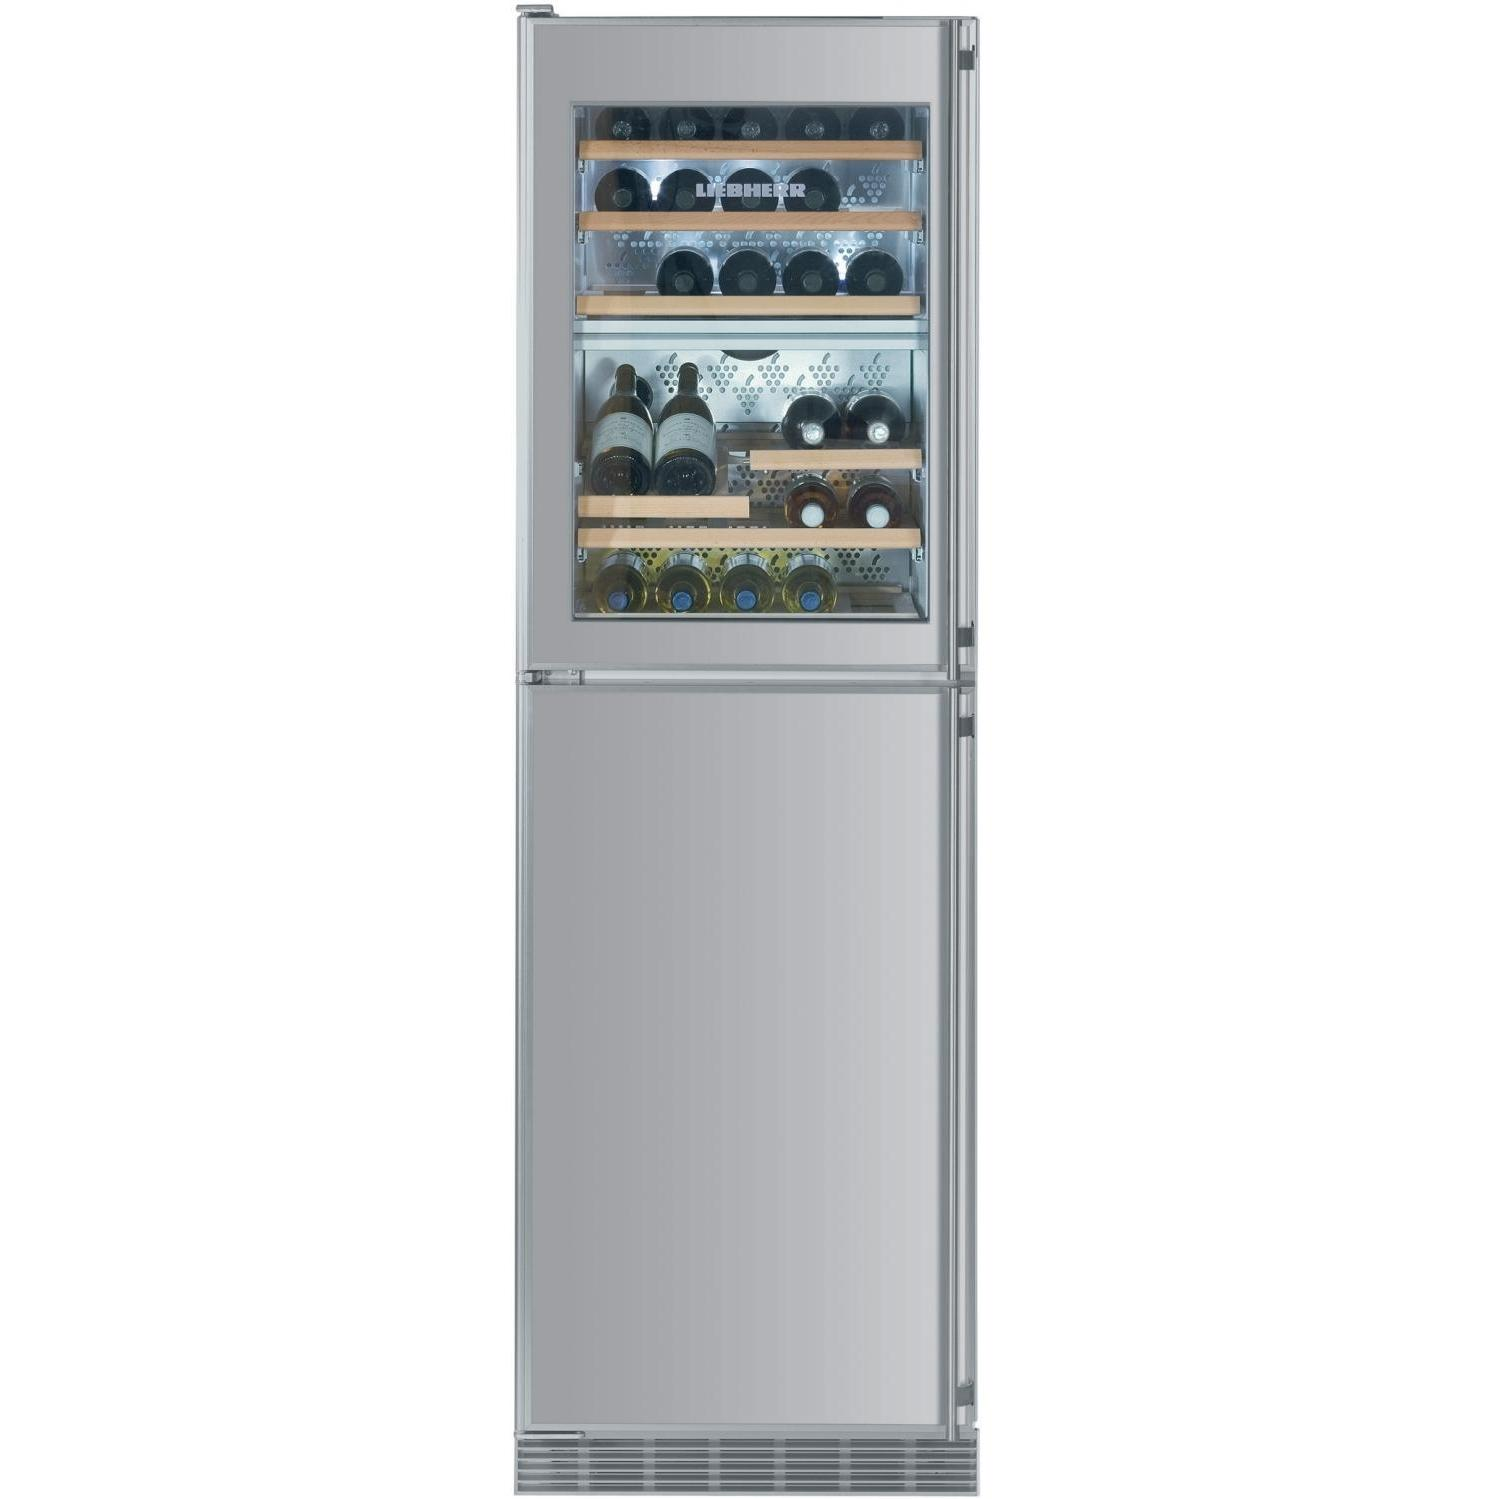 Liebherr WF-1061 34 Bottle Built-In Wine Cooler / Freezer With Ice Maker - Stainless Steel